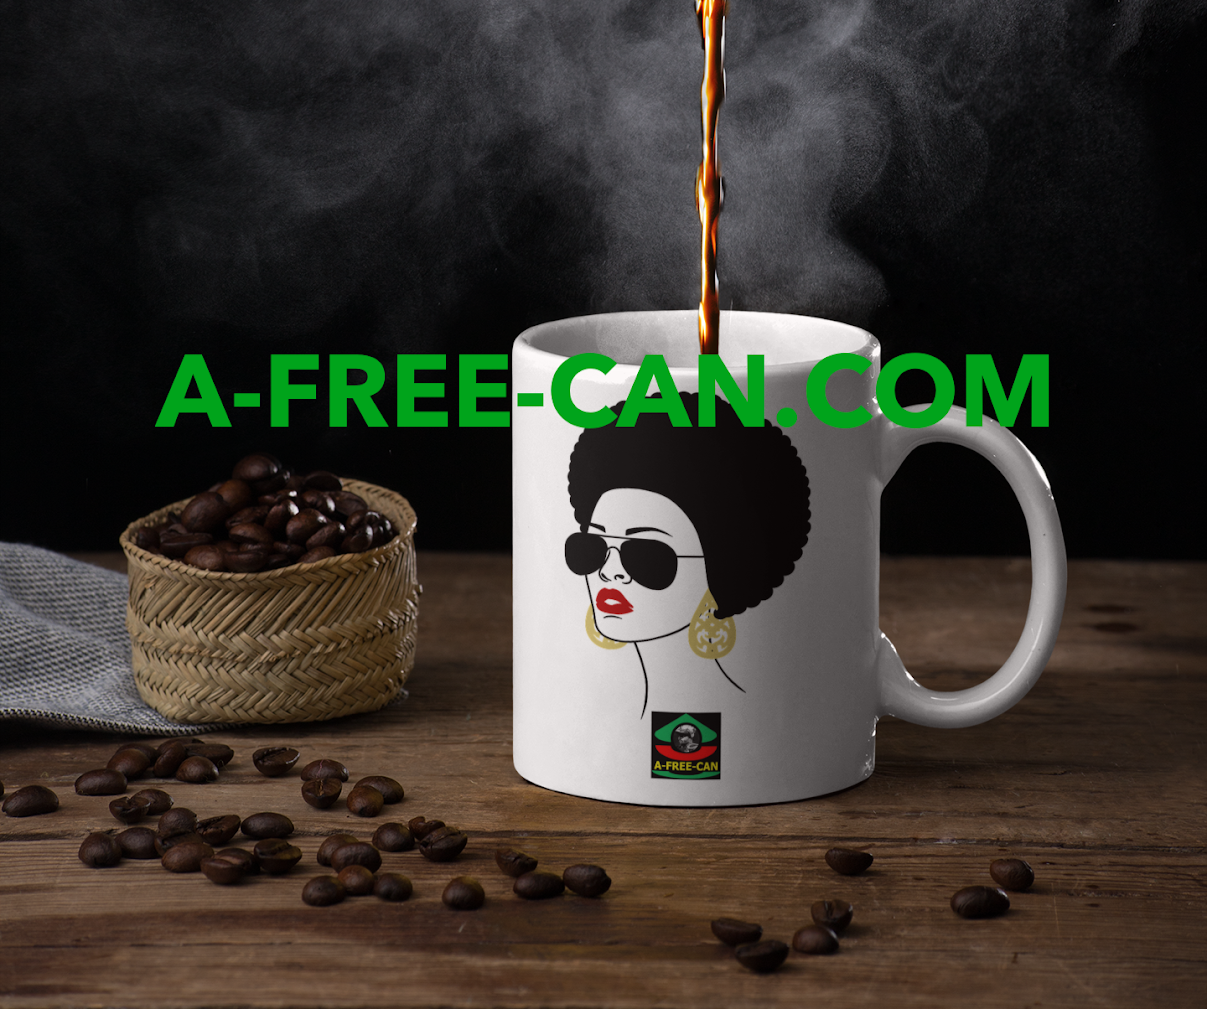 """AFRO HAIR 1"" by A-FREE-CAN.COM - (Mug)"